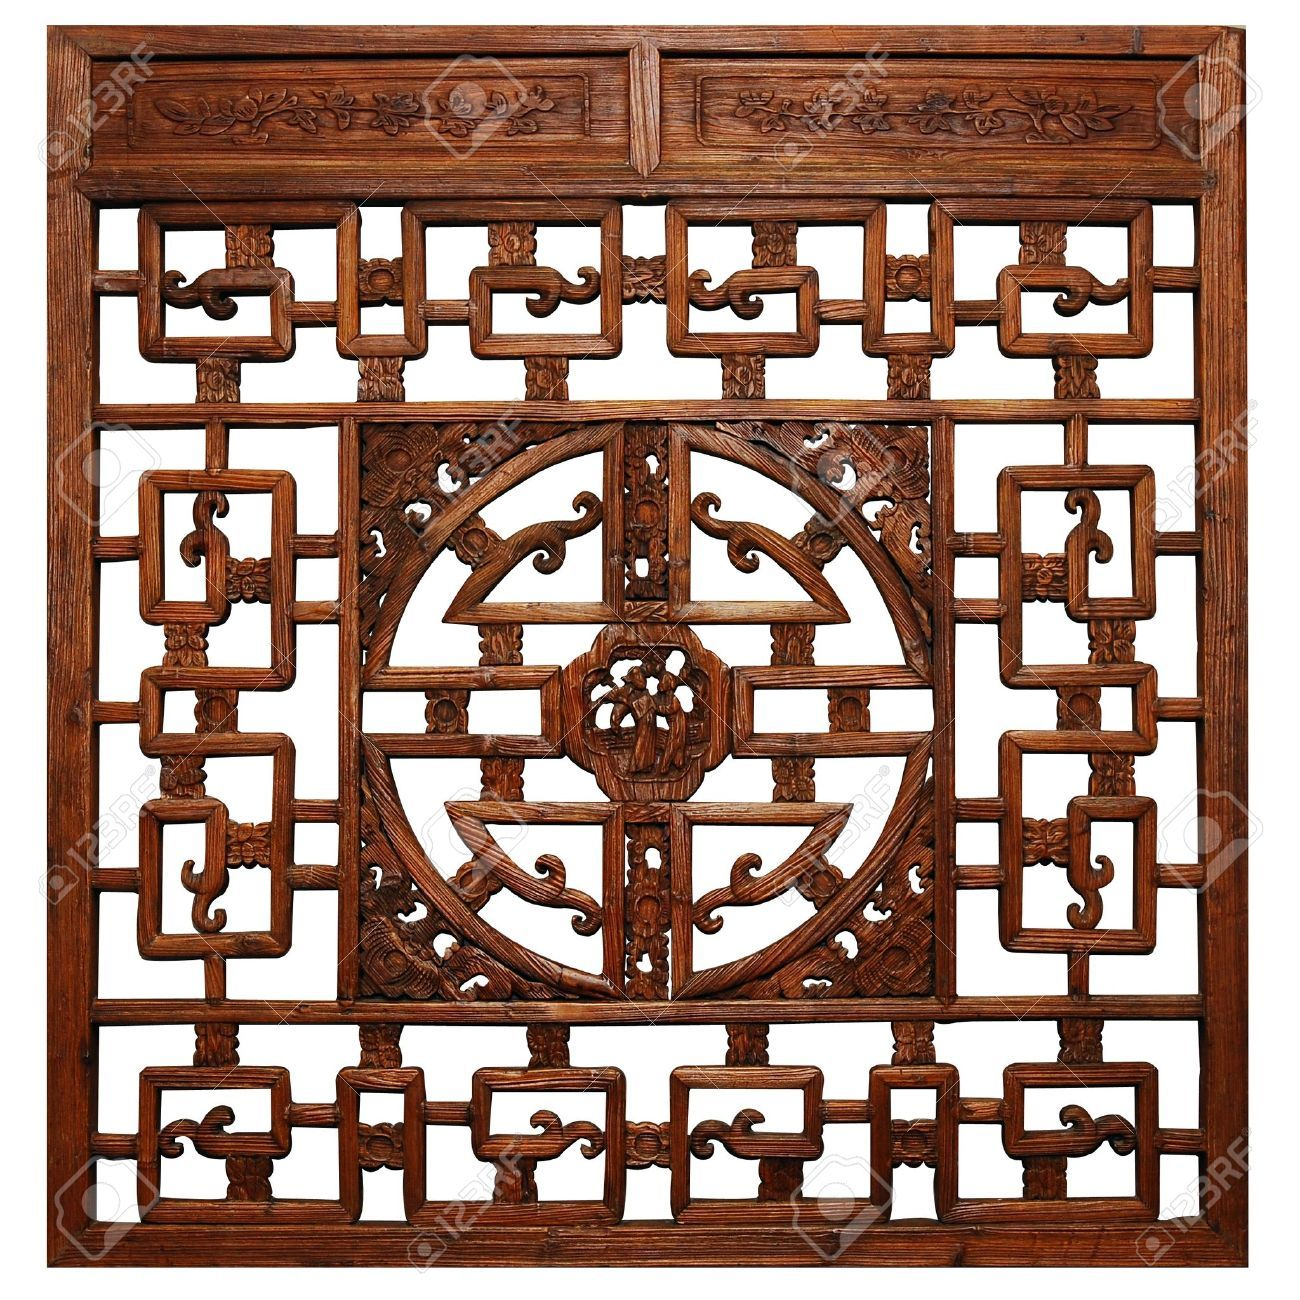 Chinese Traditional wood carvings - Stock Photo from the largest library of  royalty-free images, only at Shutterstock.